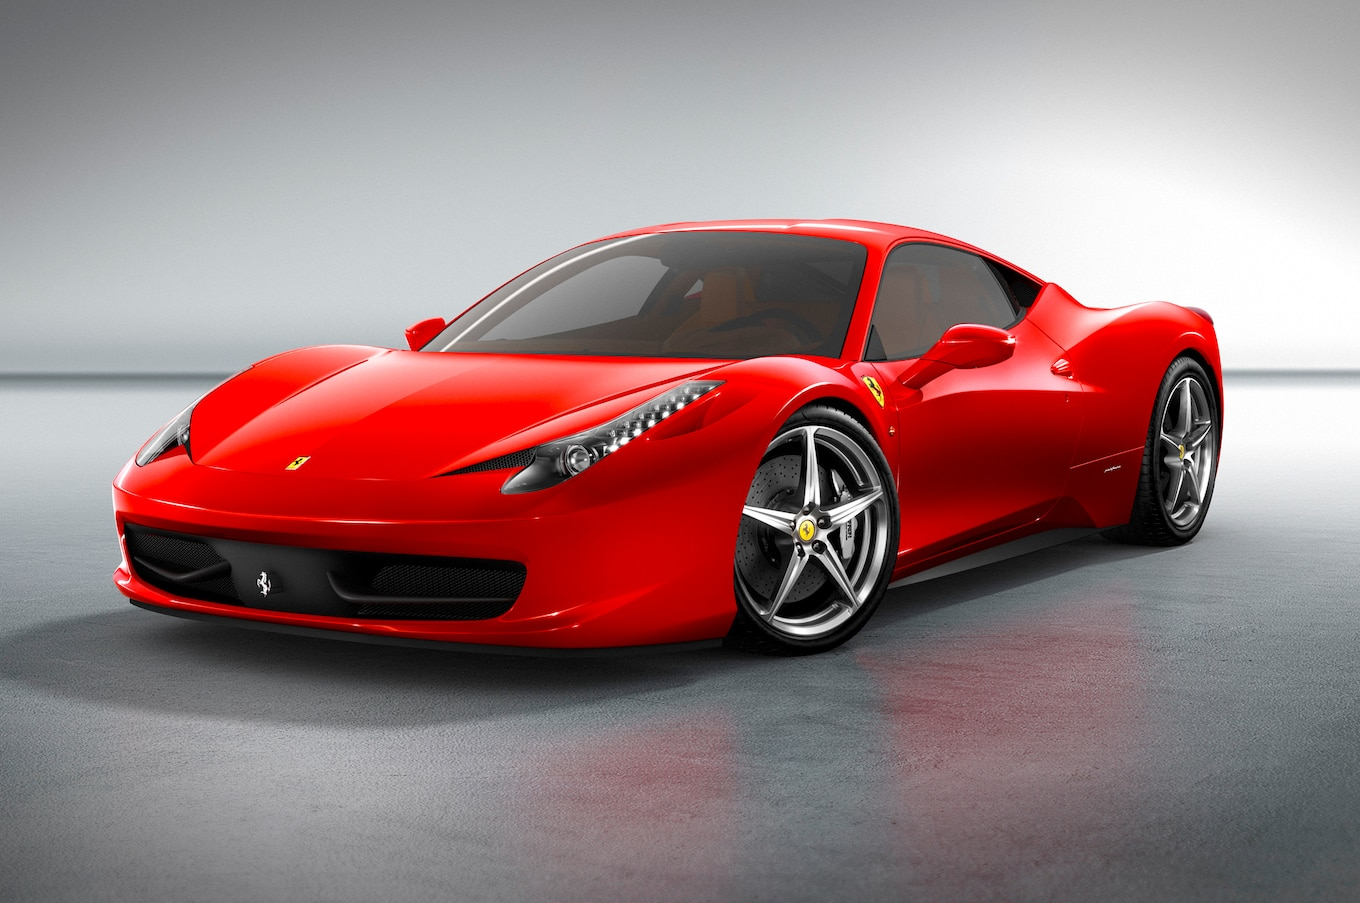 2013-ferrari-458-italia-front-three-quarters-view.jpg